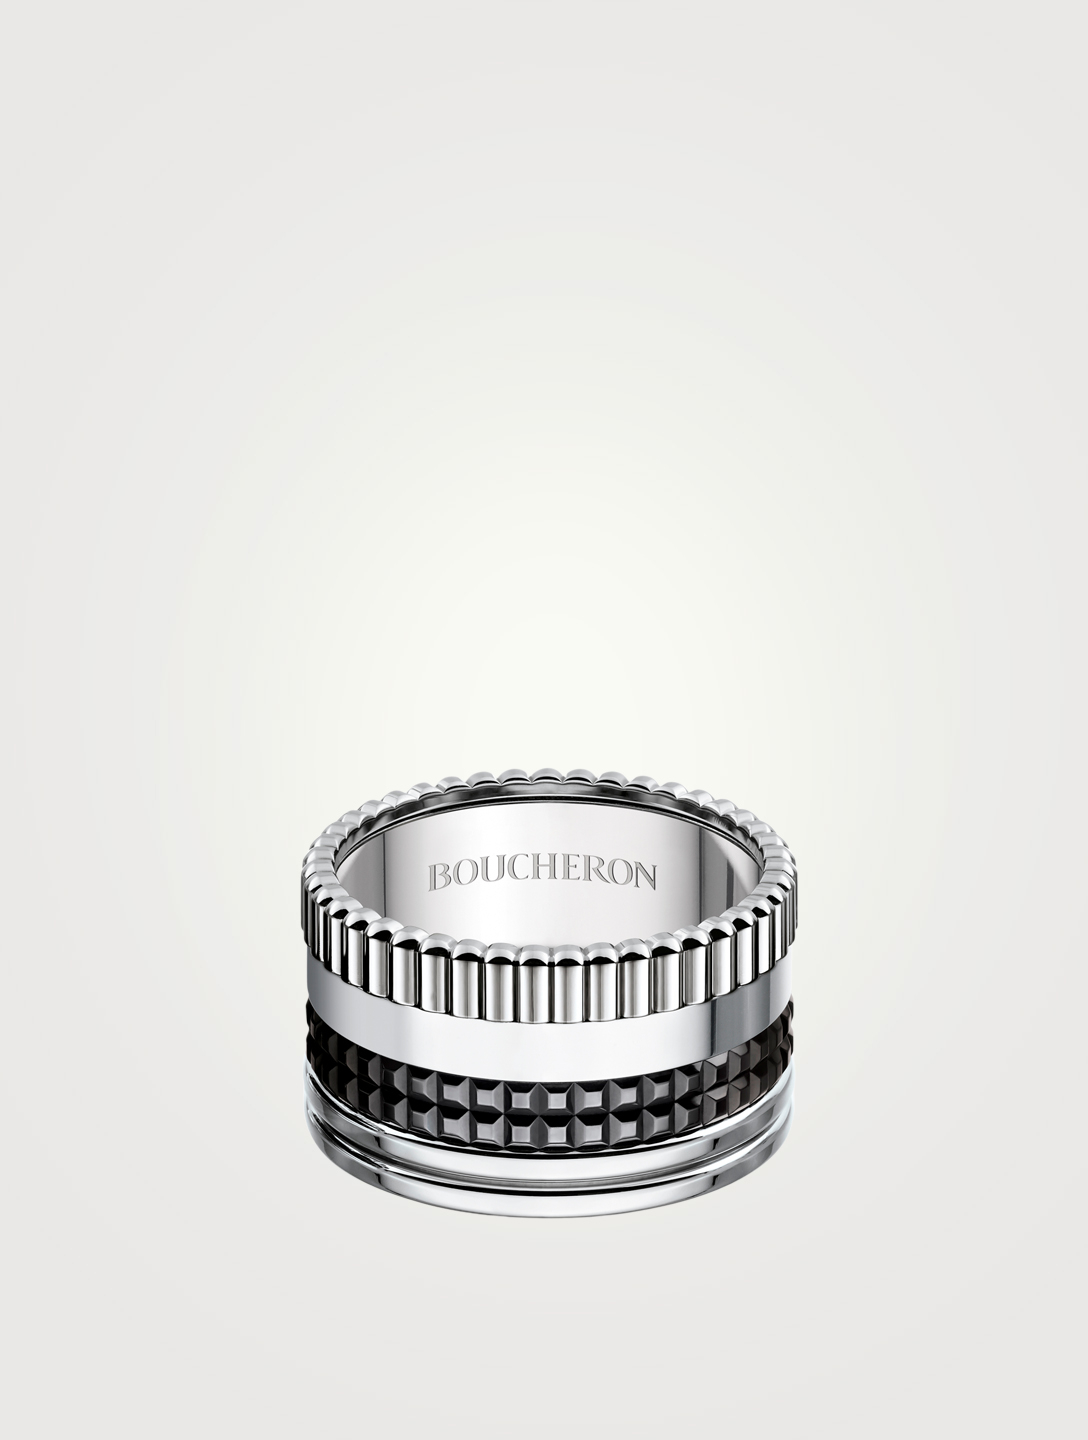 BOUCHERON Large Black Edition Quatre White Gold Ring With Black PVD Women's Metallic